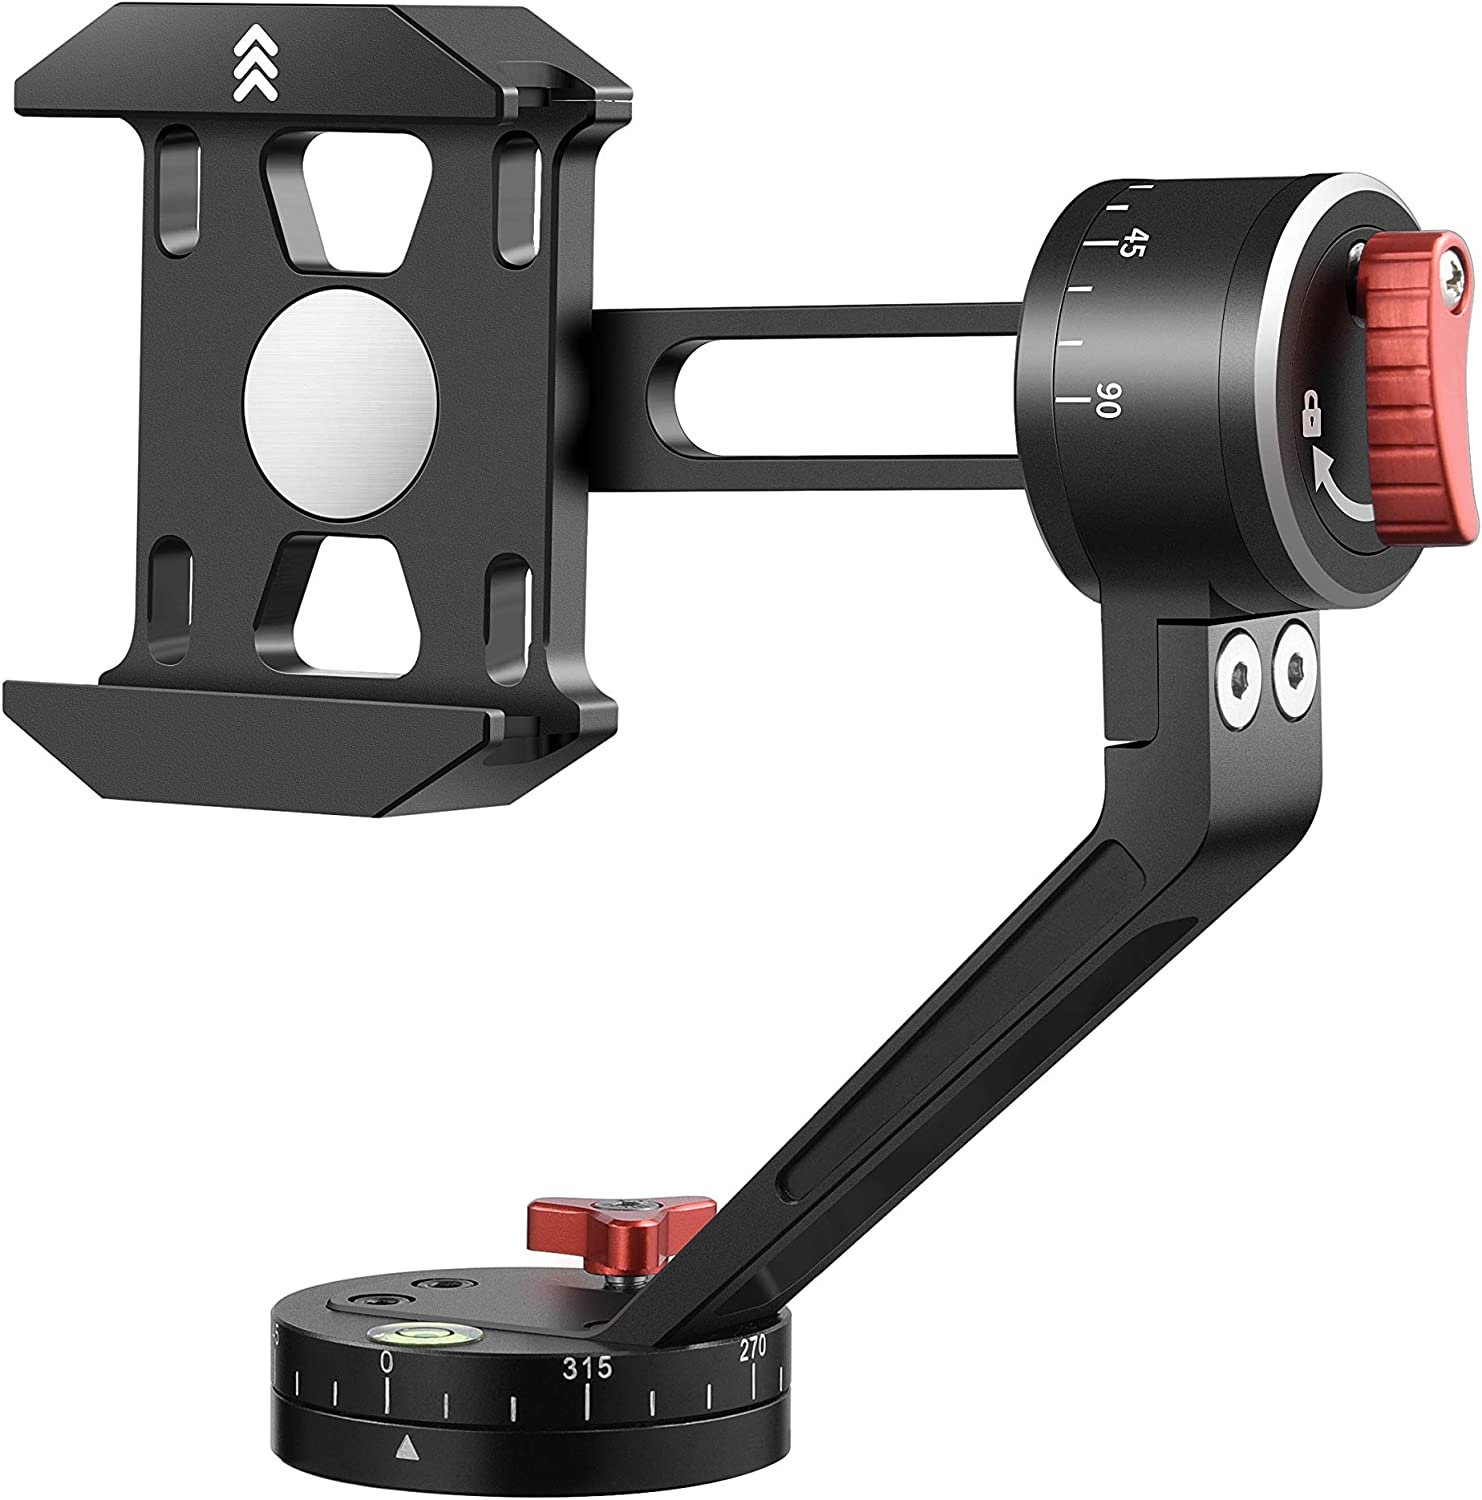 Zecti Tripod Head for Cell Phone S 360 Columbus Mall Alloy Popular brand in the world CNC Aluminum Degree